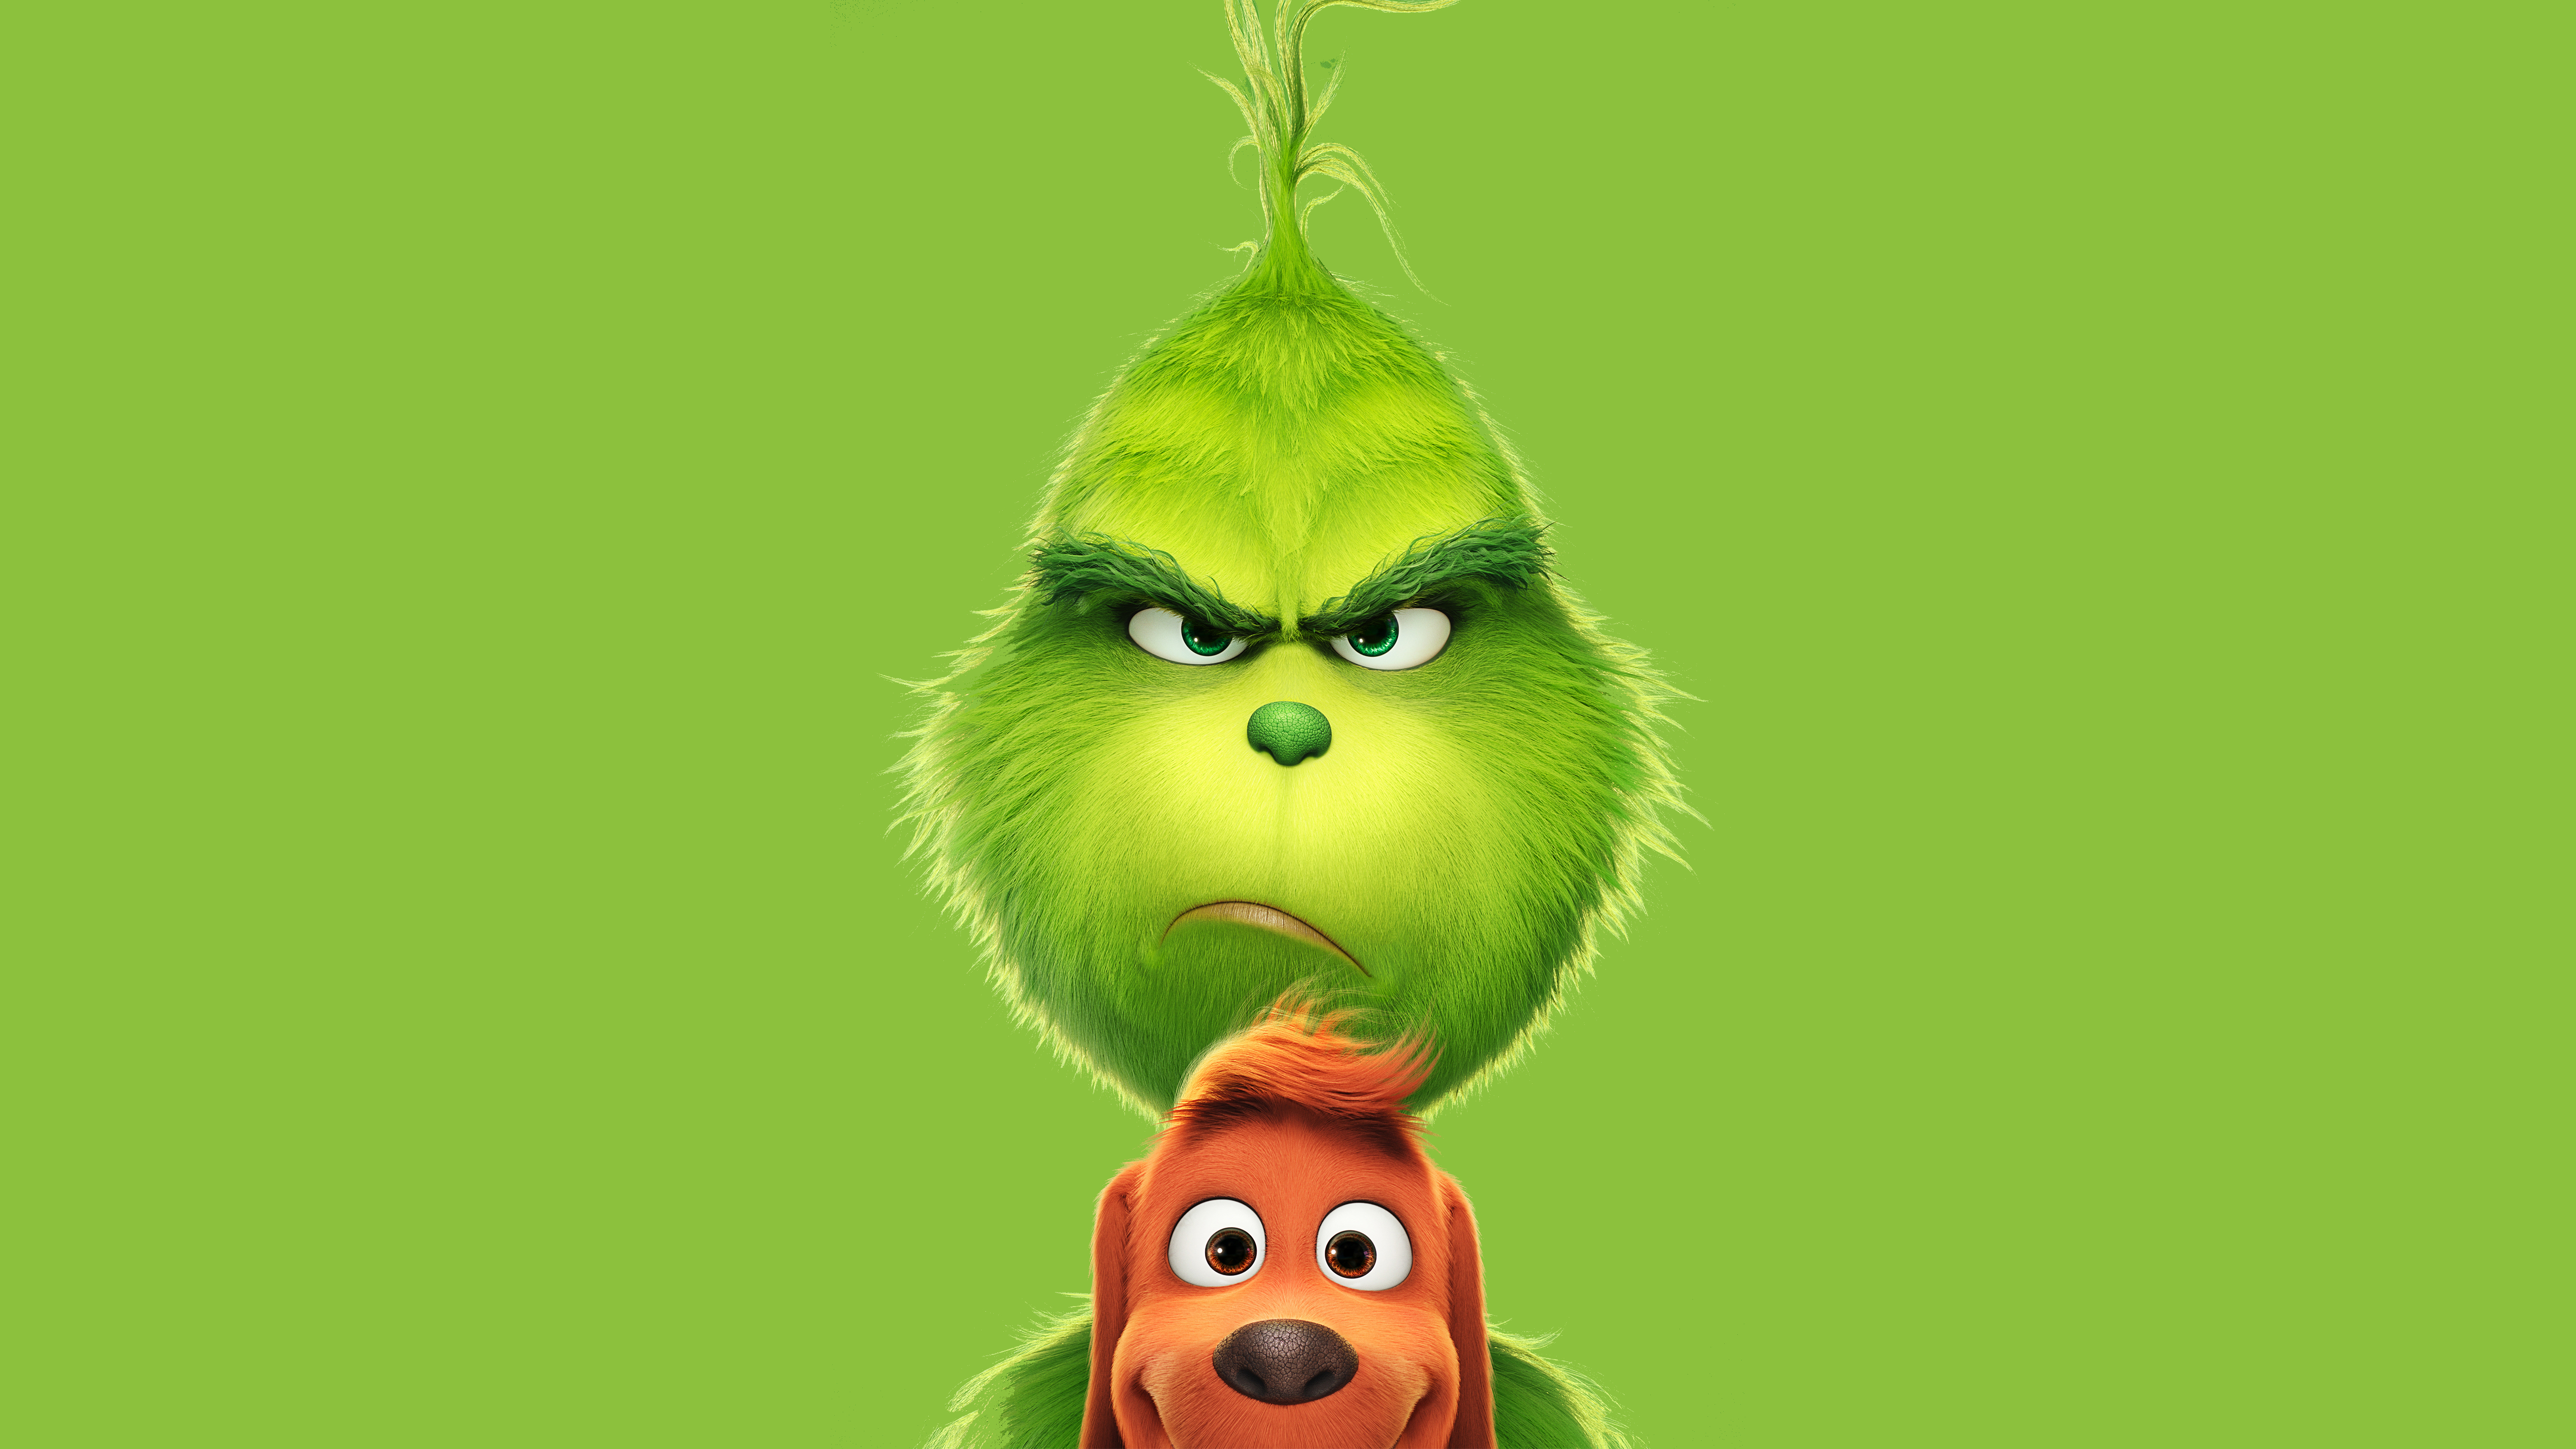 Wallpaper The Grinch Movie Animated film